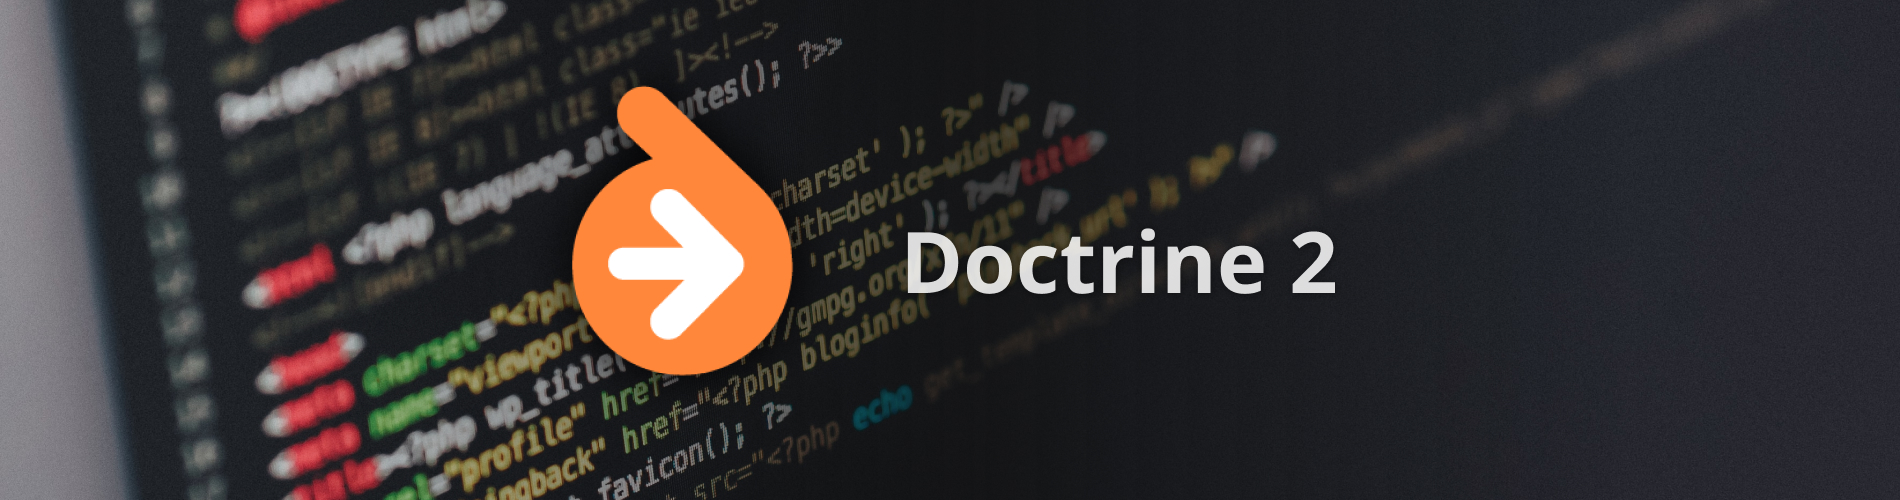 what is a doctrine